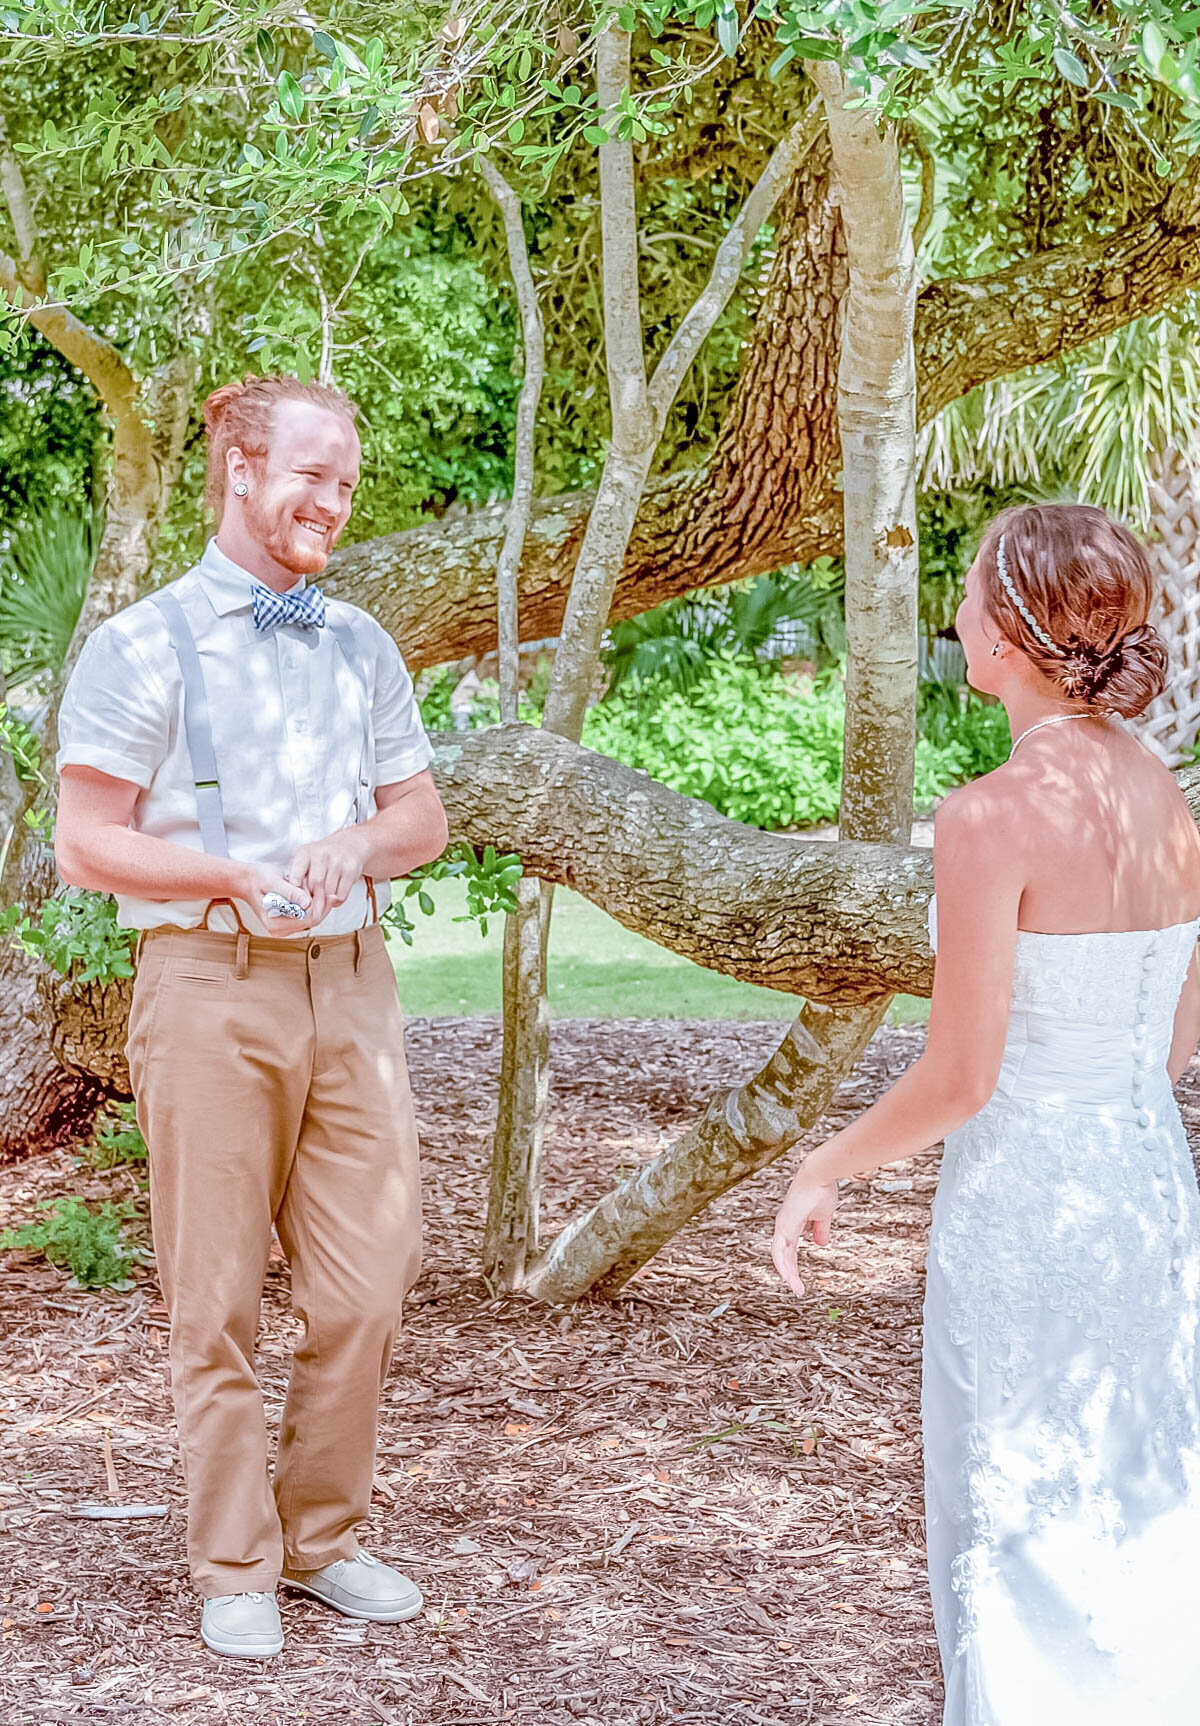 Bald Head Island Wedding Photography - Anna and Ray - Beach First Look 2 - Wilmington Photographers Team